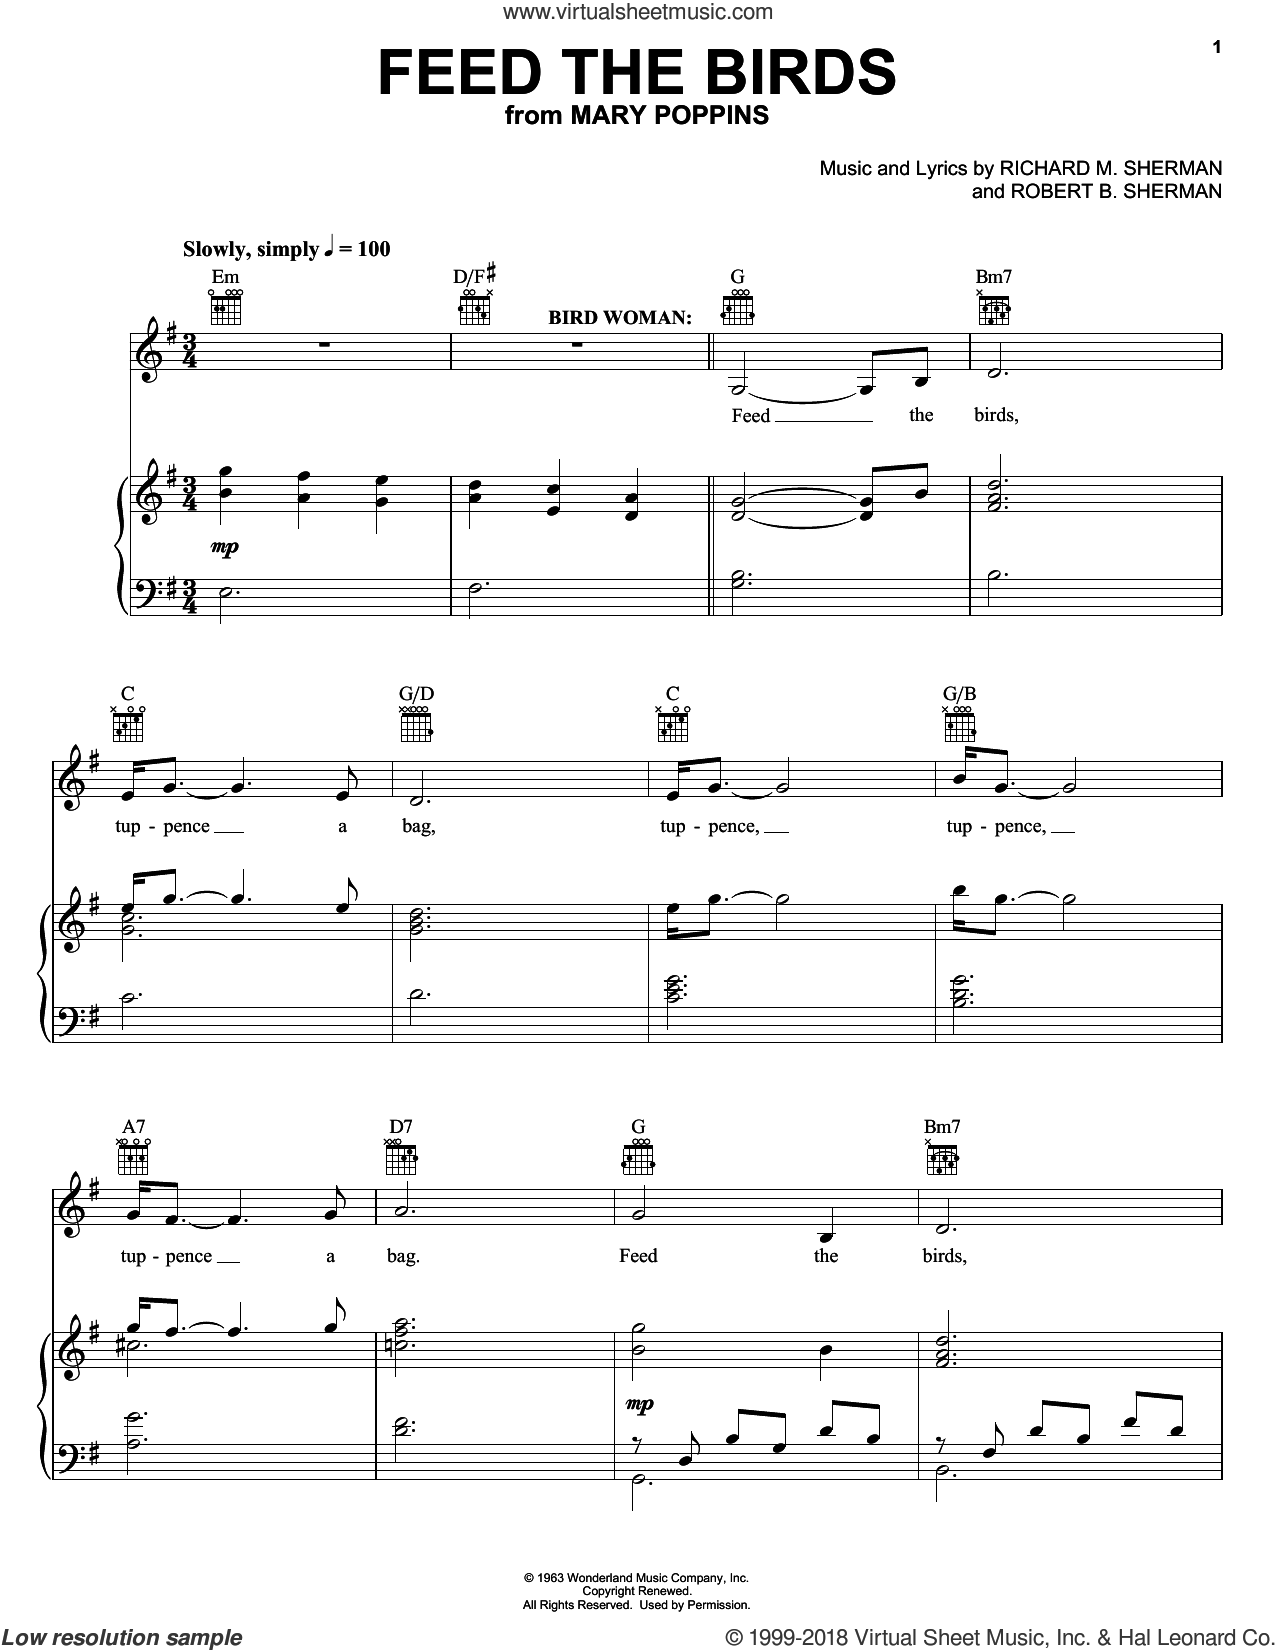 Feed The Birds sheet music for voice, piano or guitar by Sherman Brothers, Anthony Drewe, George Stiles, Richard M. Sherman and Robert B. Sherman. Score Image Preview.